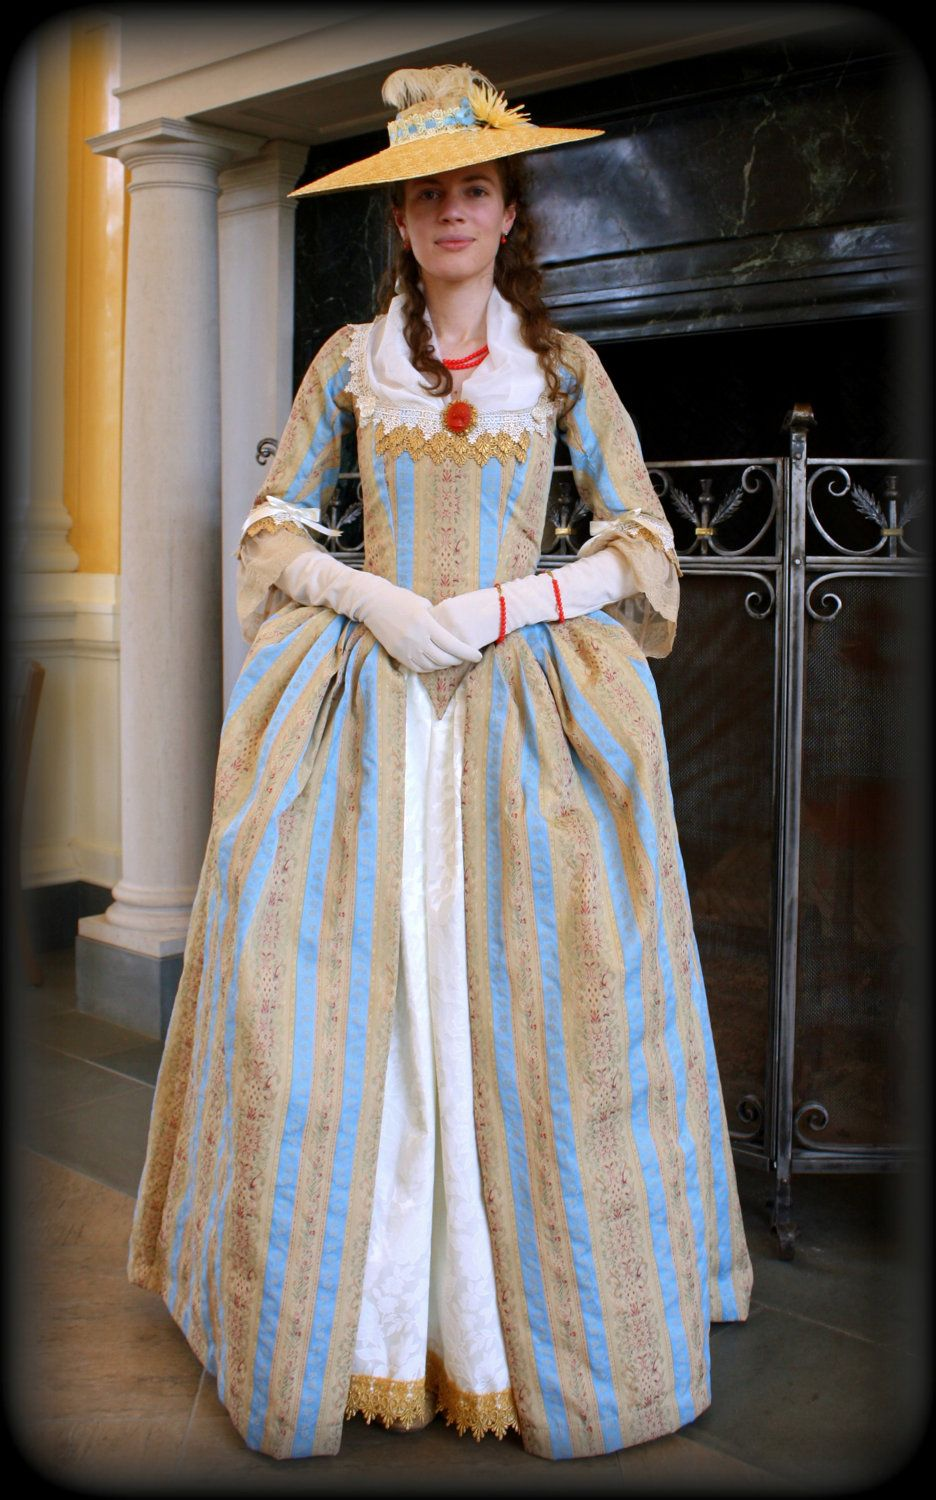 Christmas gown ideas 18th - 18th Century French Provincial Colonial Country Style Gown Dress